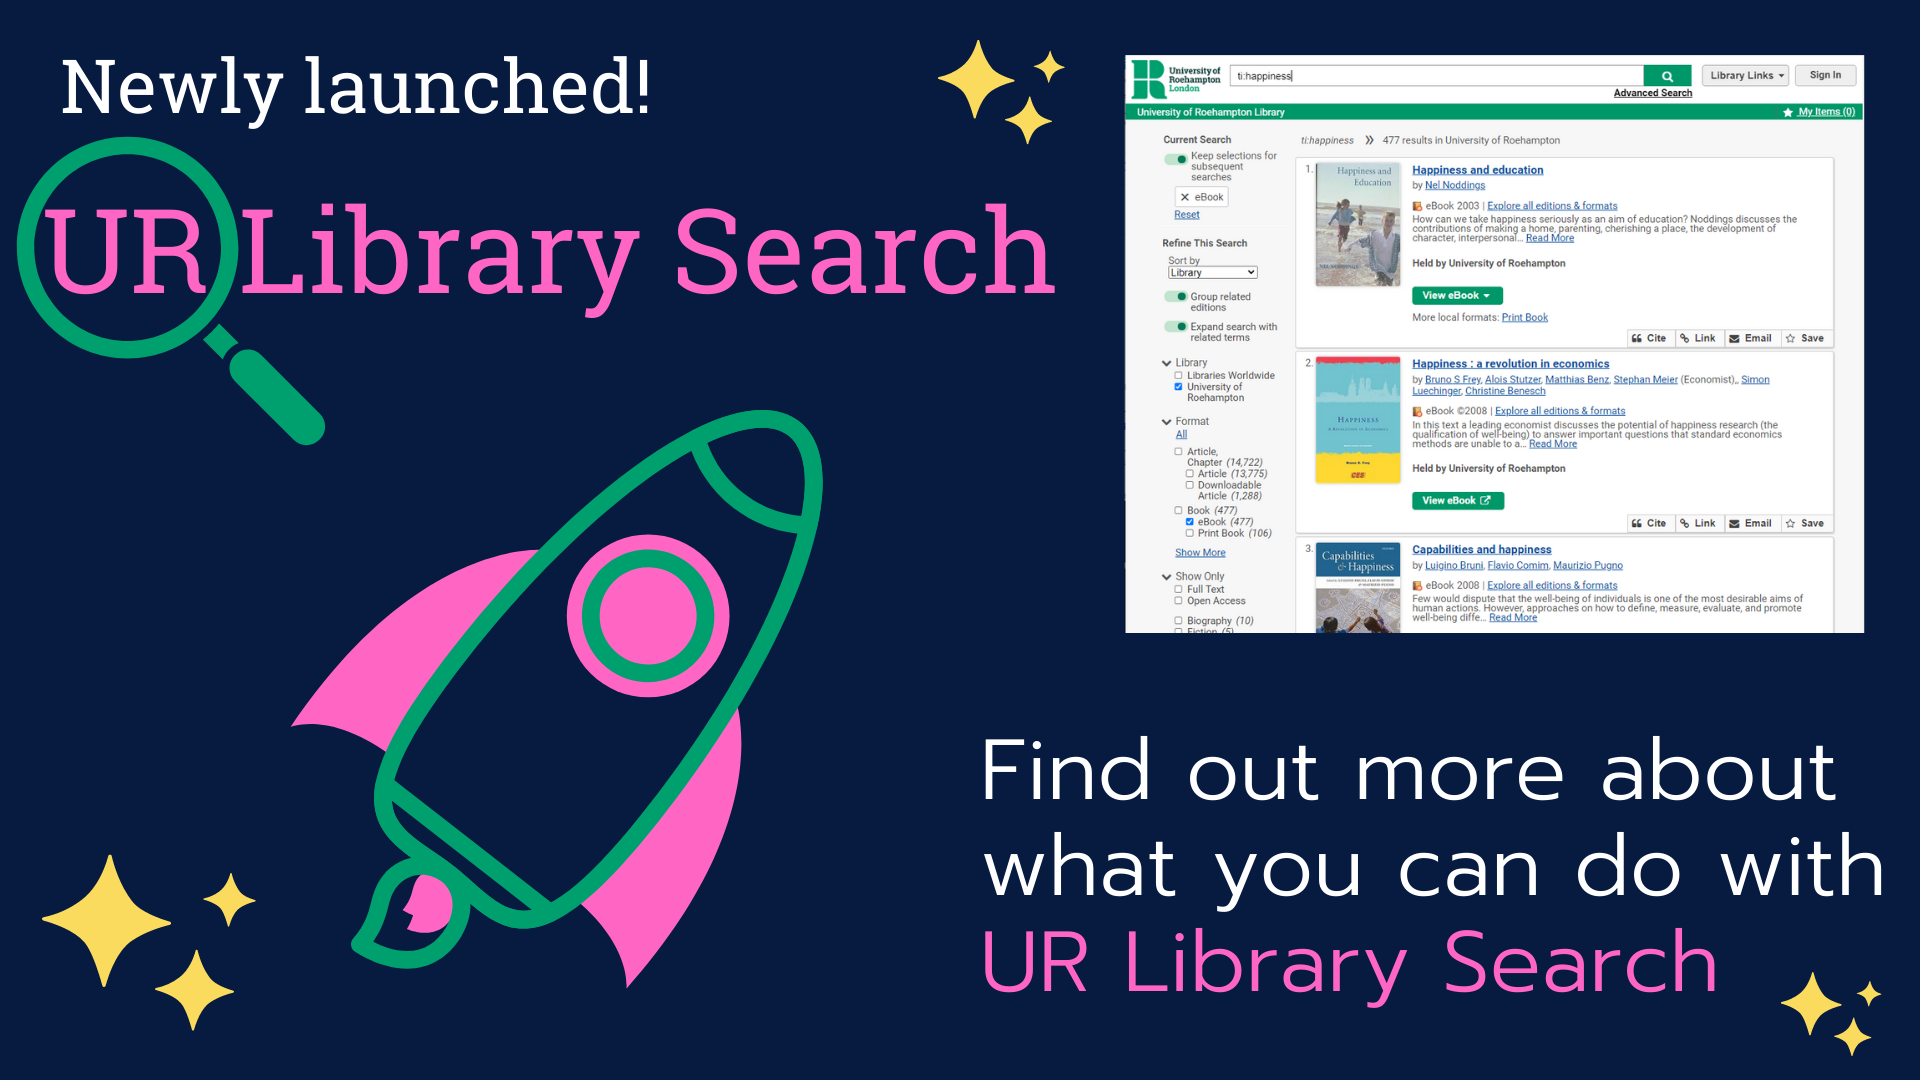 Find out what you can do with UR Library Search